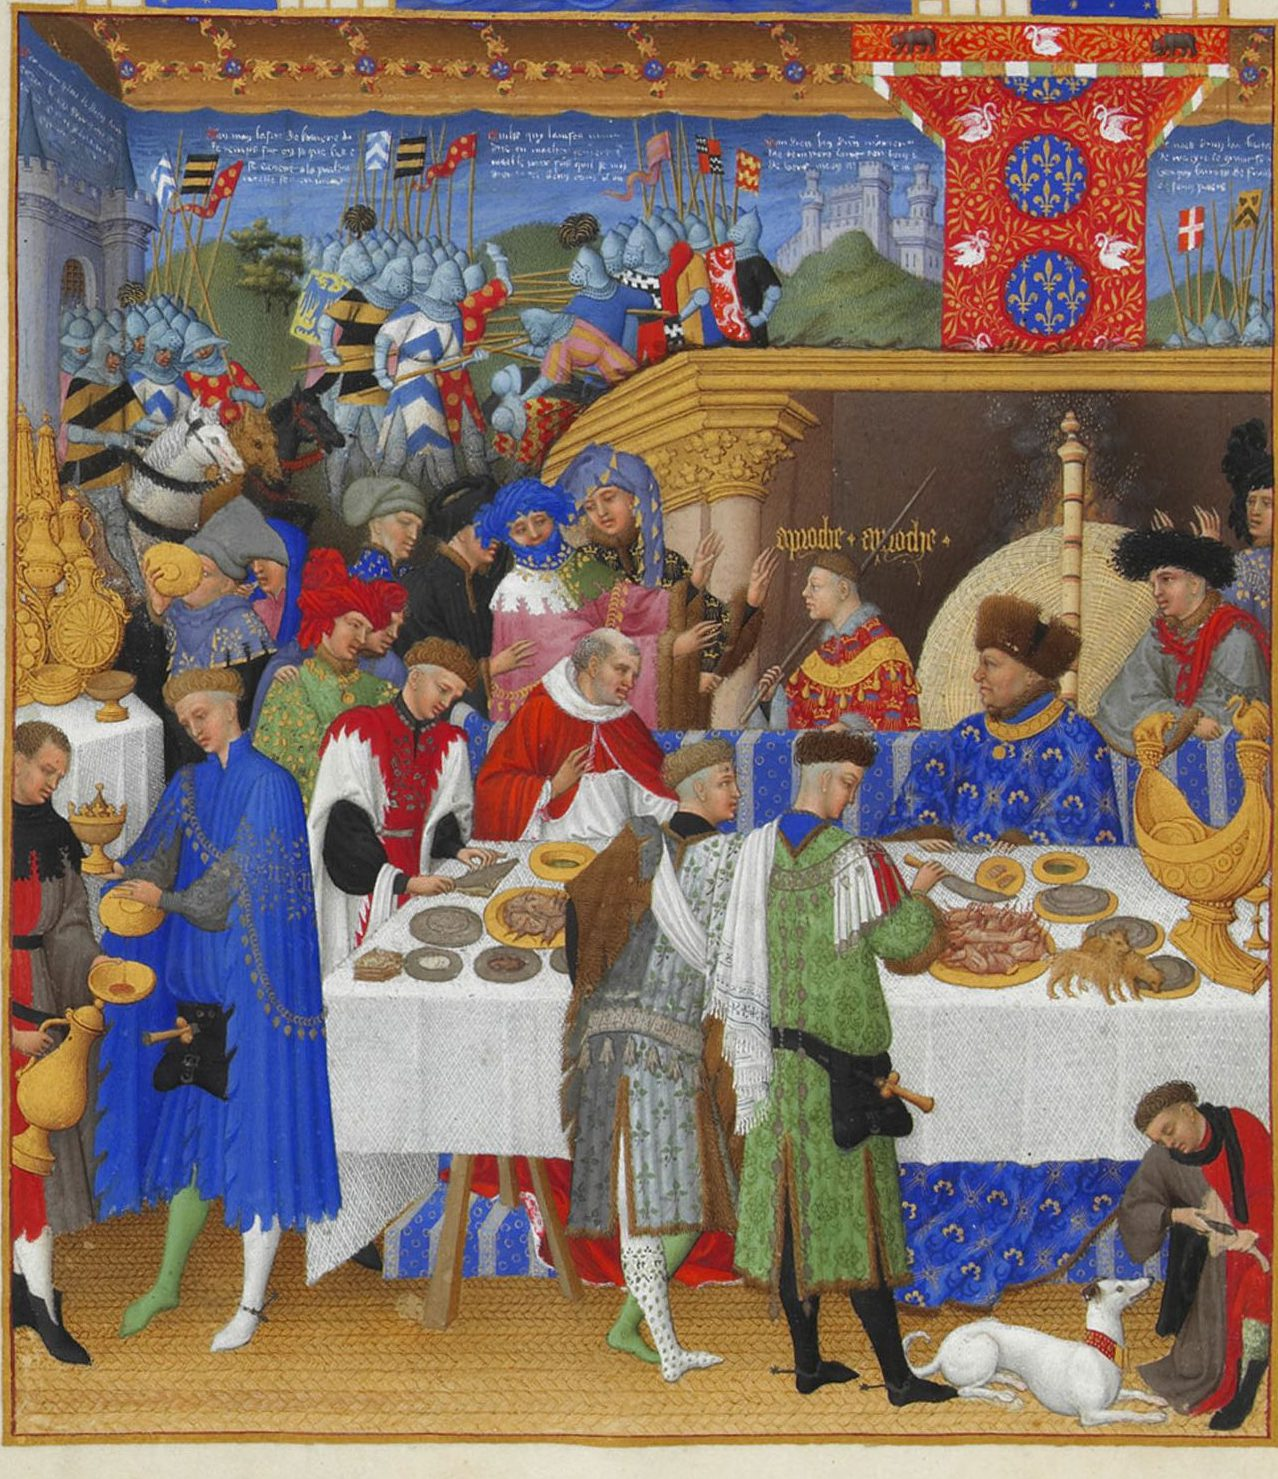 Courtiers feasting